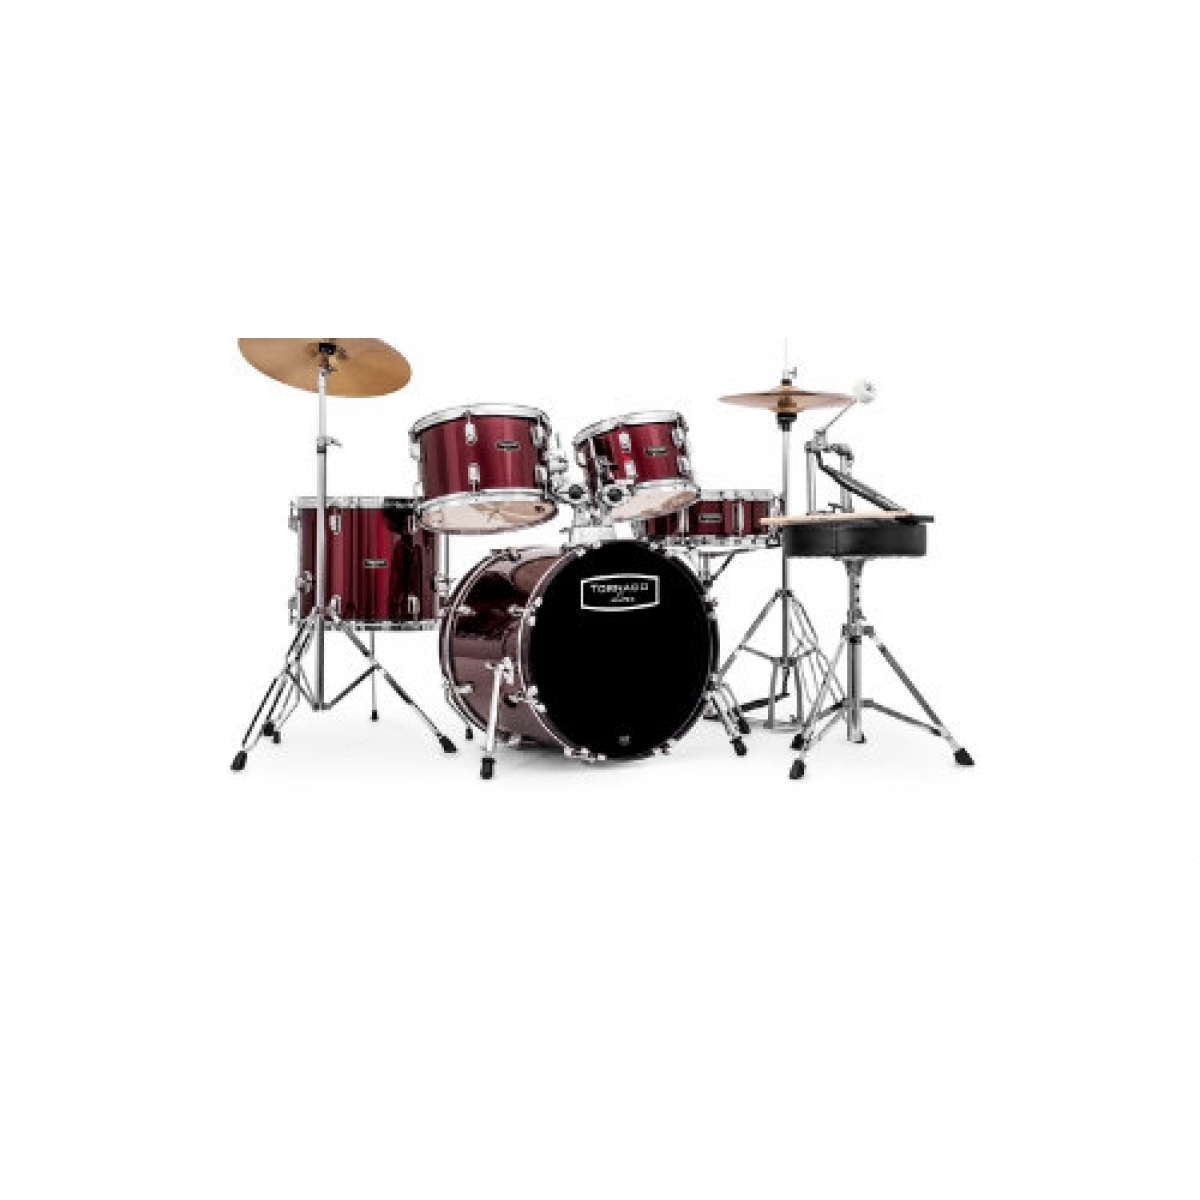 Tornado By Mapex Tnd Ftc Drum Kit At Promenade Music